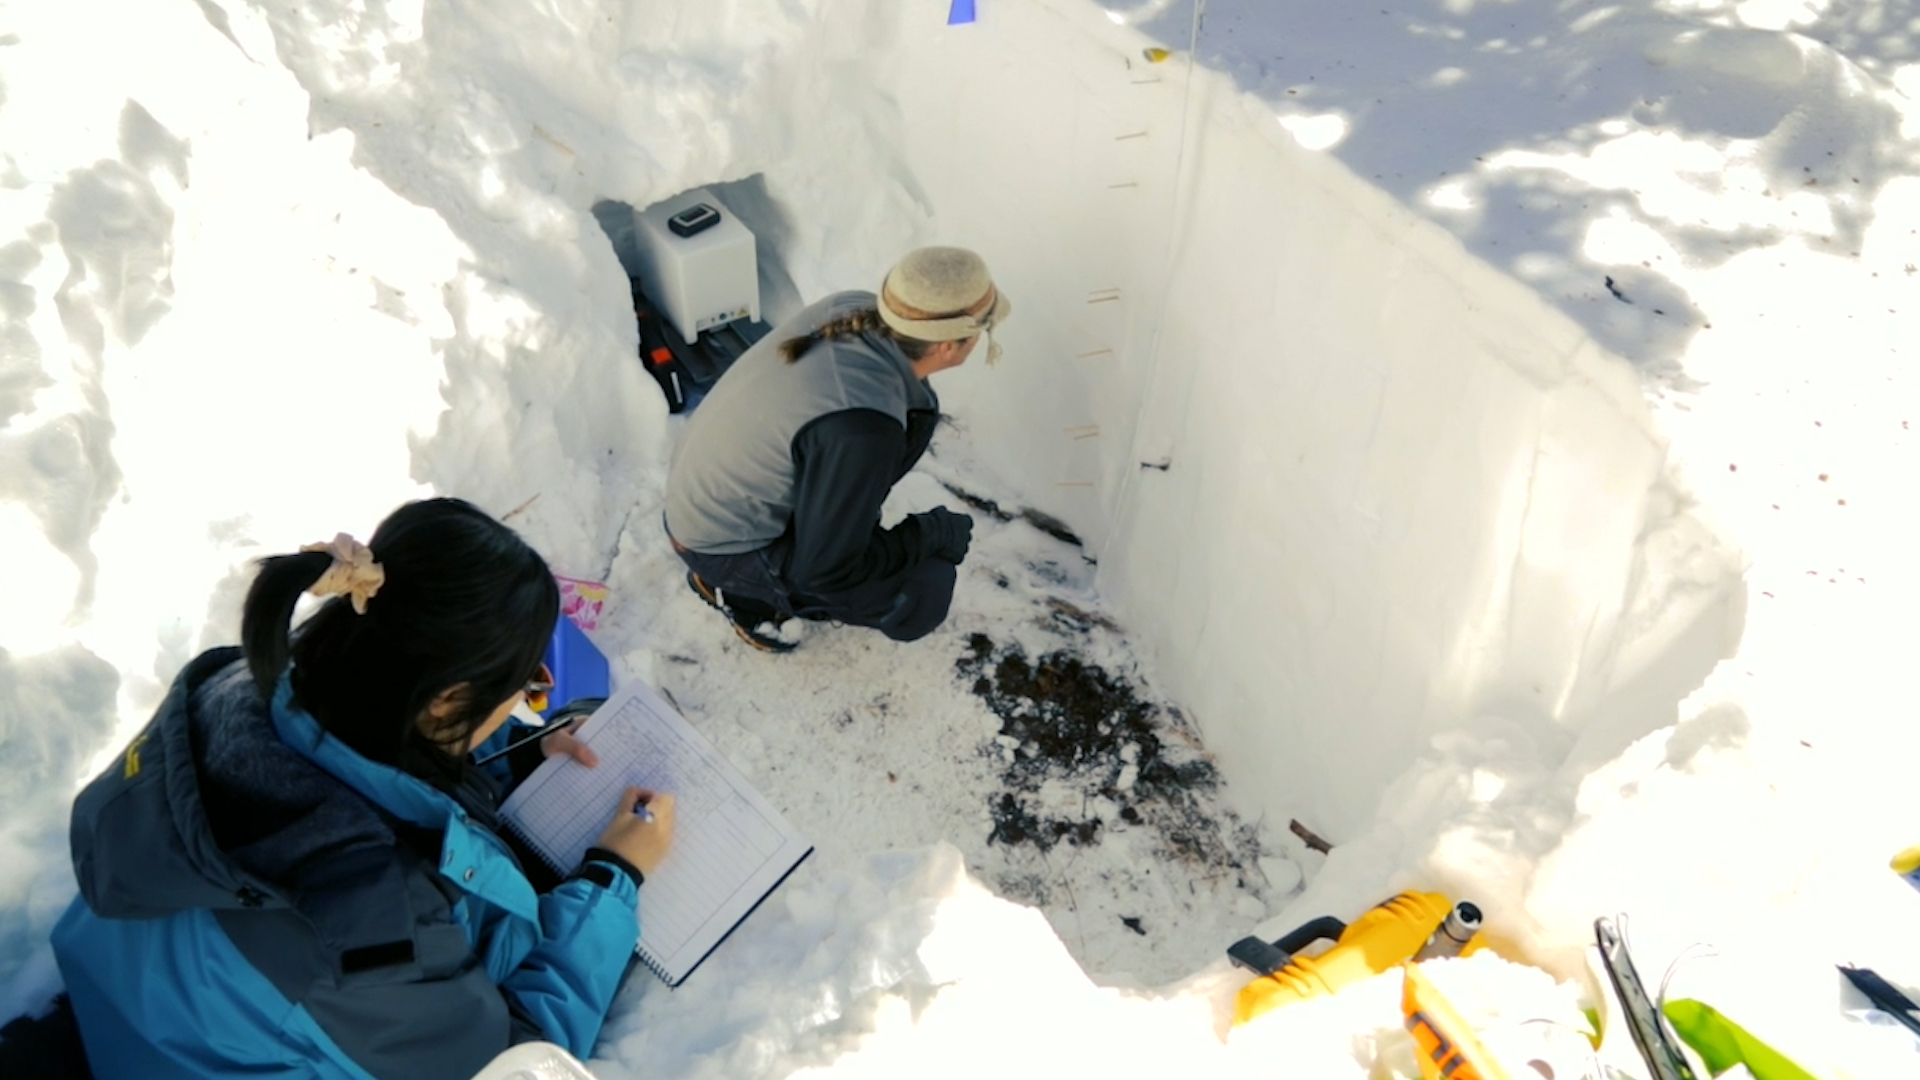 Researchers with SnowEx field campaign dug snow pits to determine snow water equivalent on the ground to compare with estimates made from airborne sensors flying overhead.